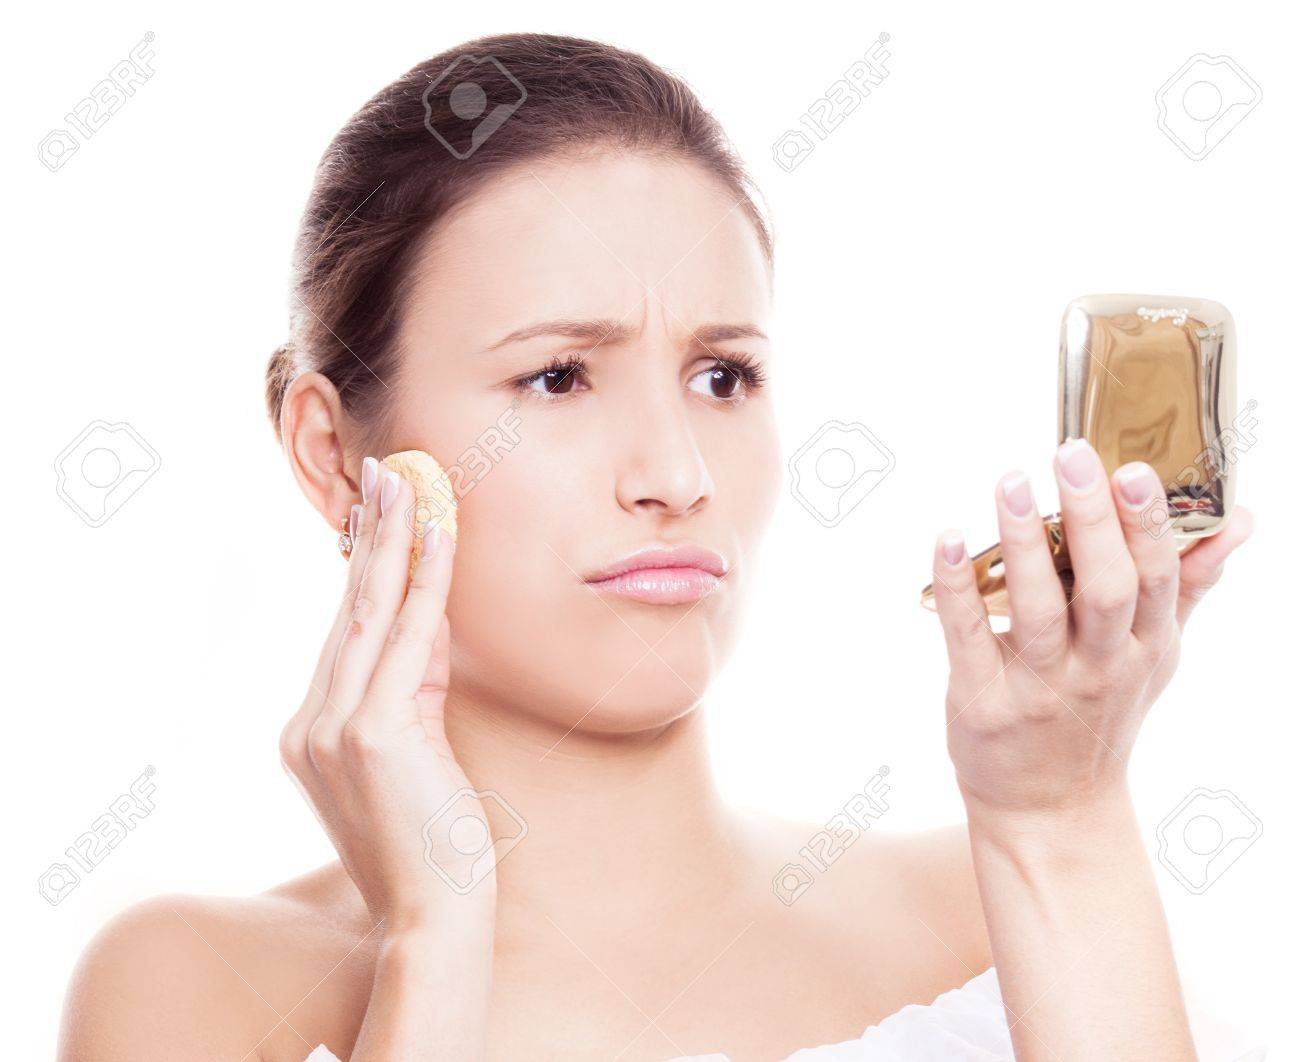 portrait of a displeased woman applying makeup, isolated against white background Stock Photo - 17014991